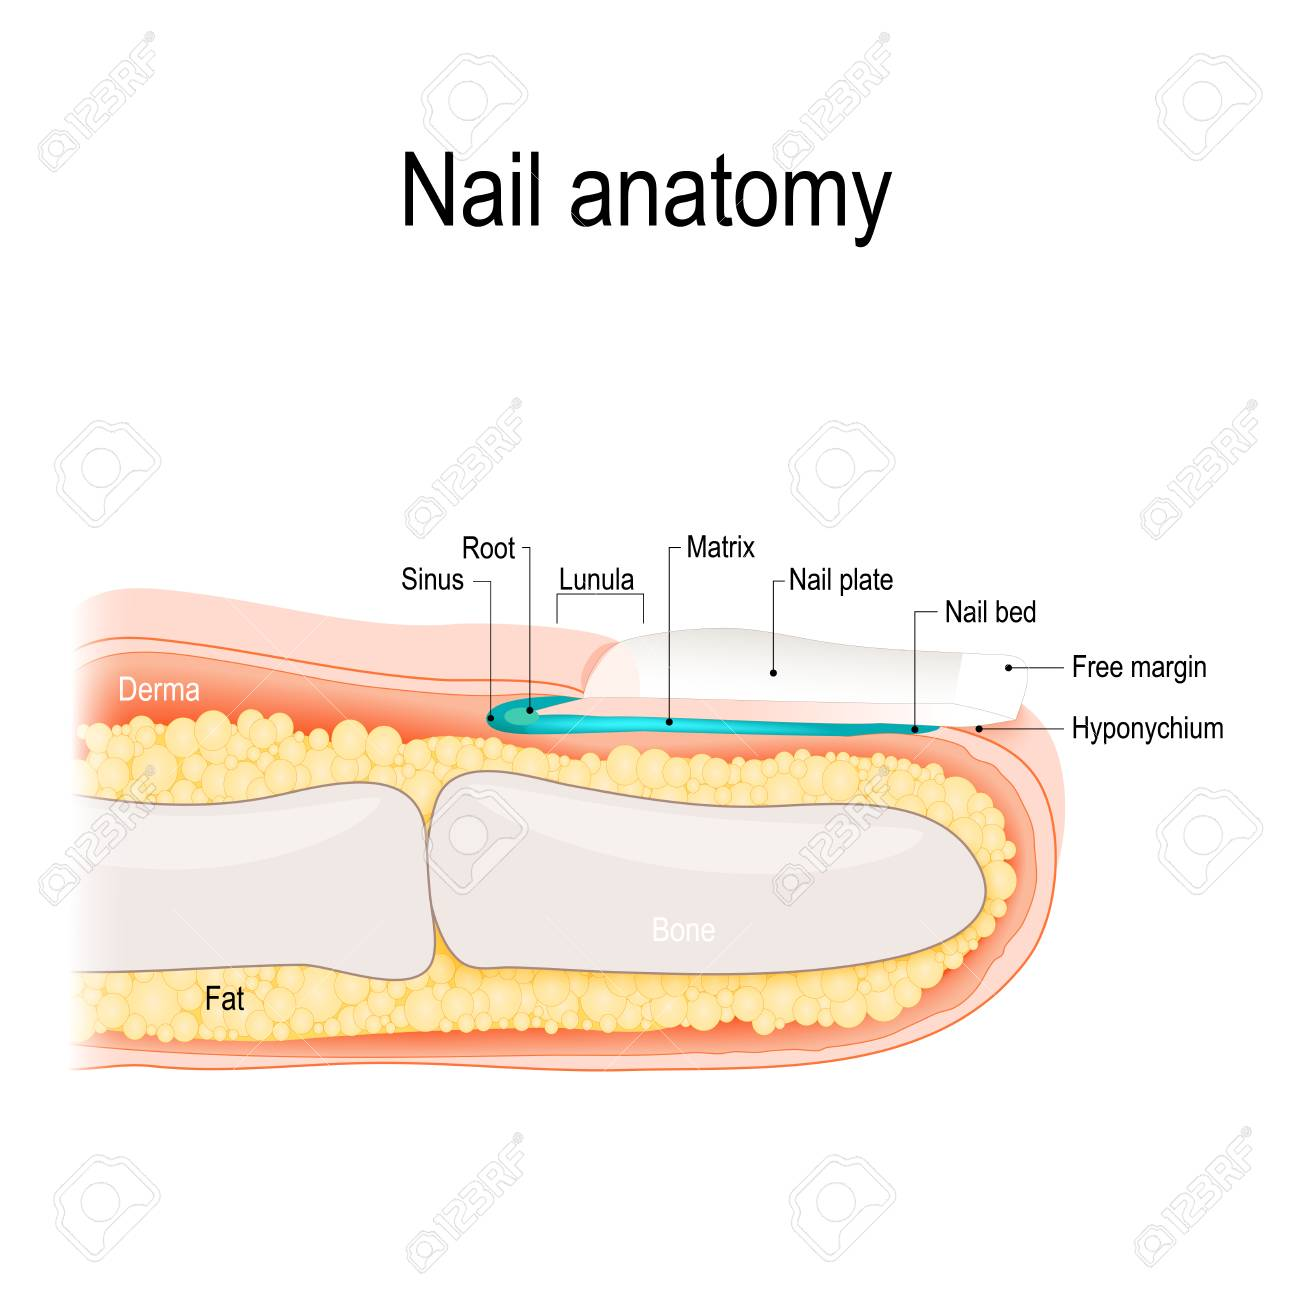 Structure Of The Nail. Human Anatomy Illustration. Royalty Free ...